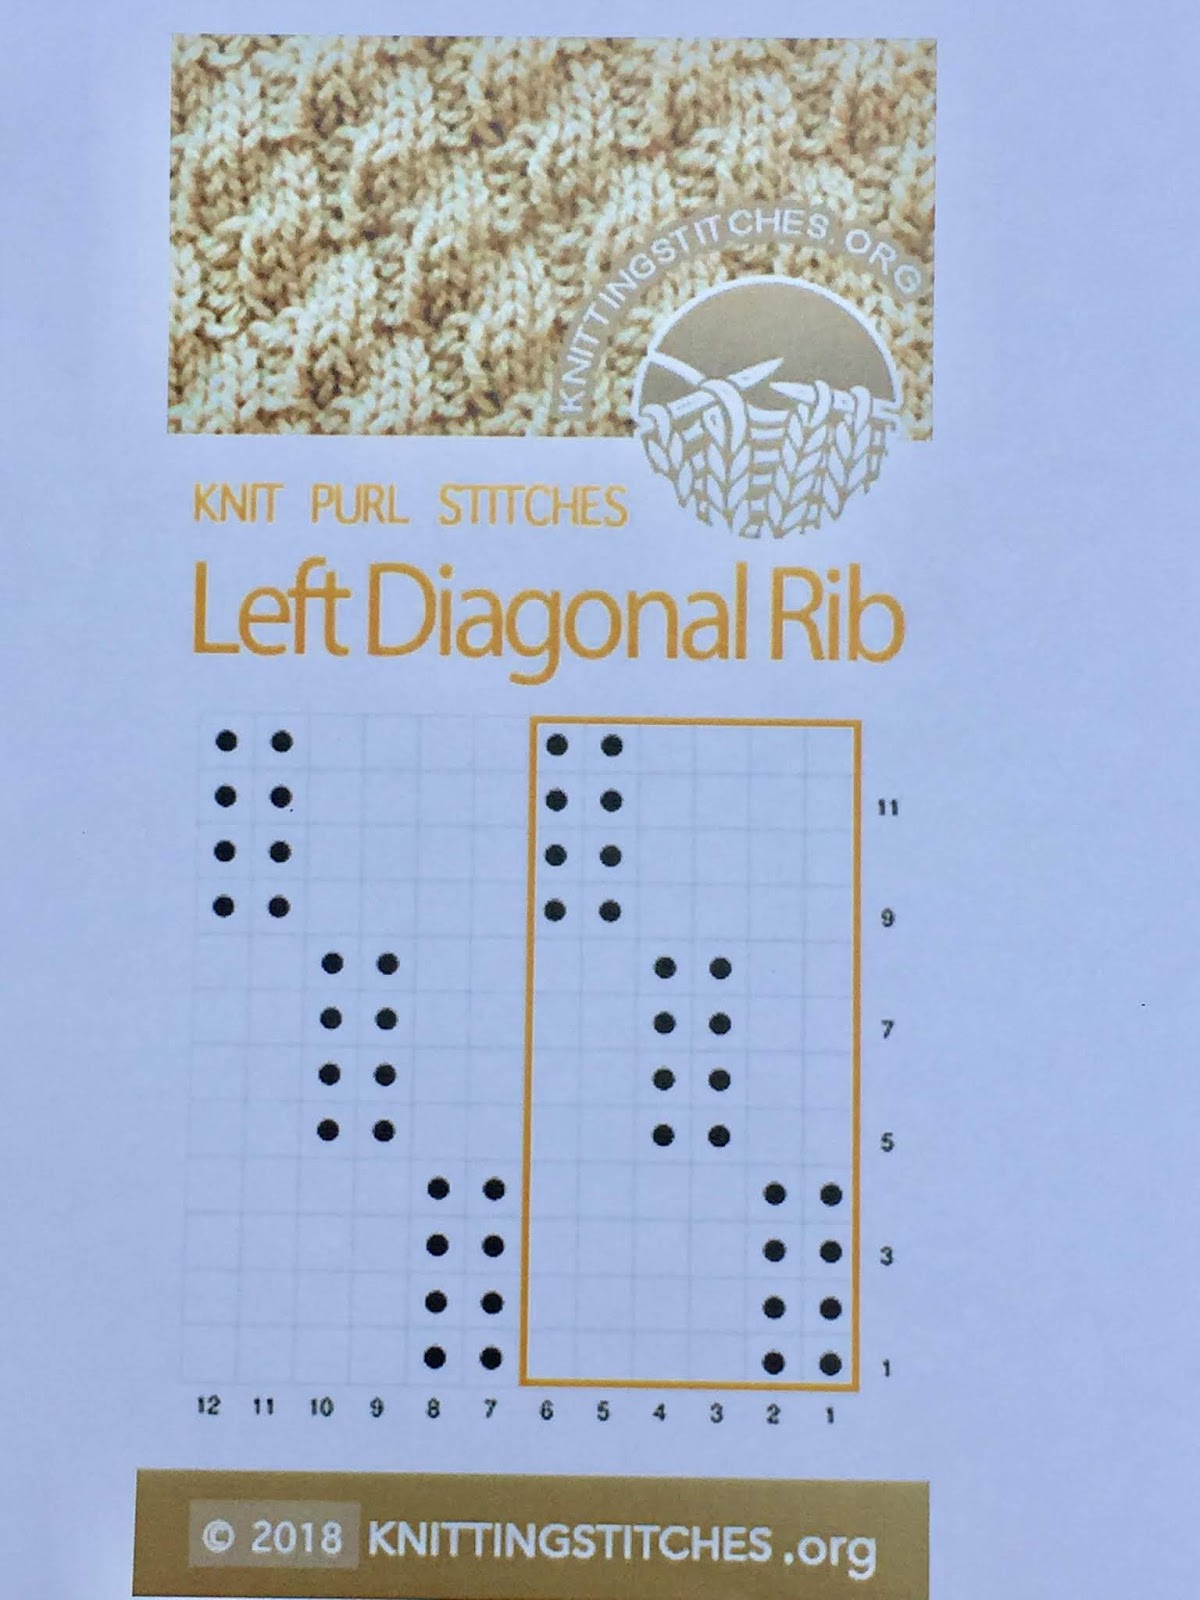 Knitting Stitches 2018 - Left Diagonal Rib Pattern